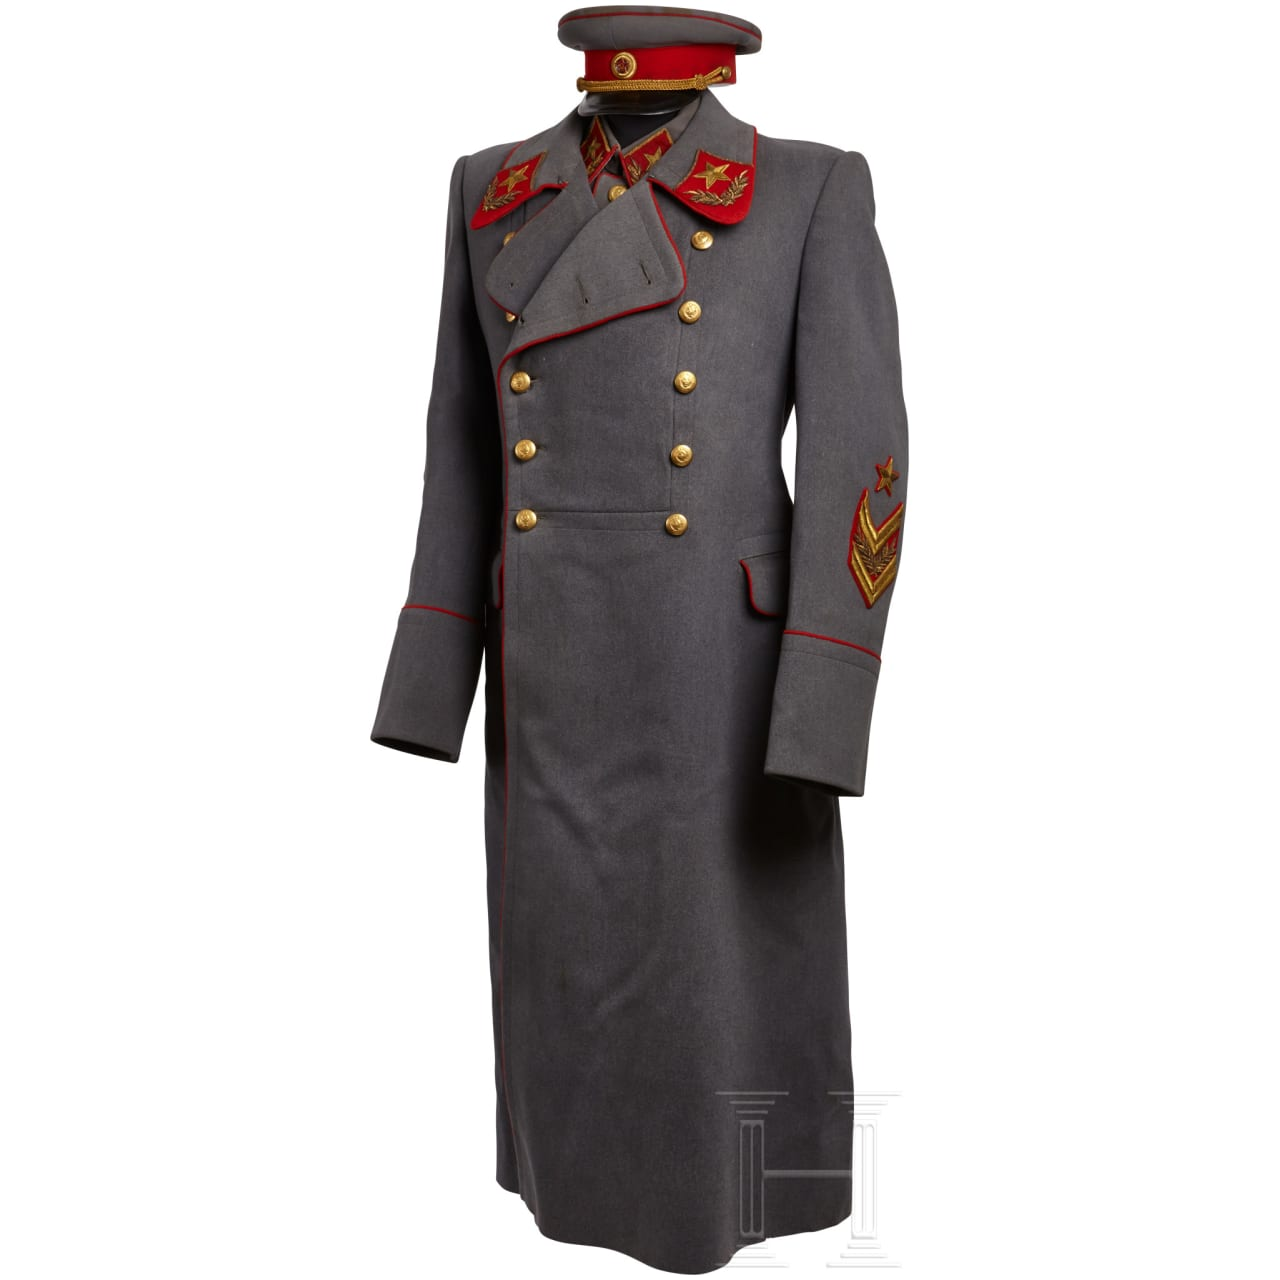 A Soviet Marshal Coat, Tunic, Belt, Cap and Awards